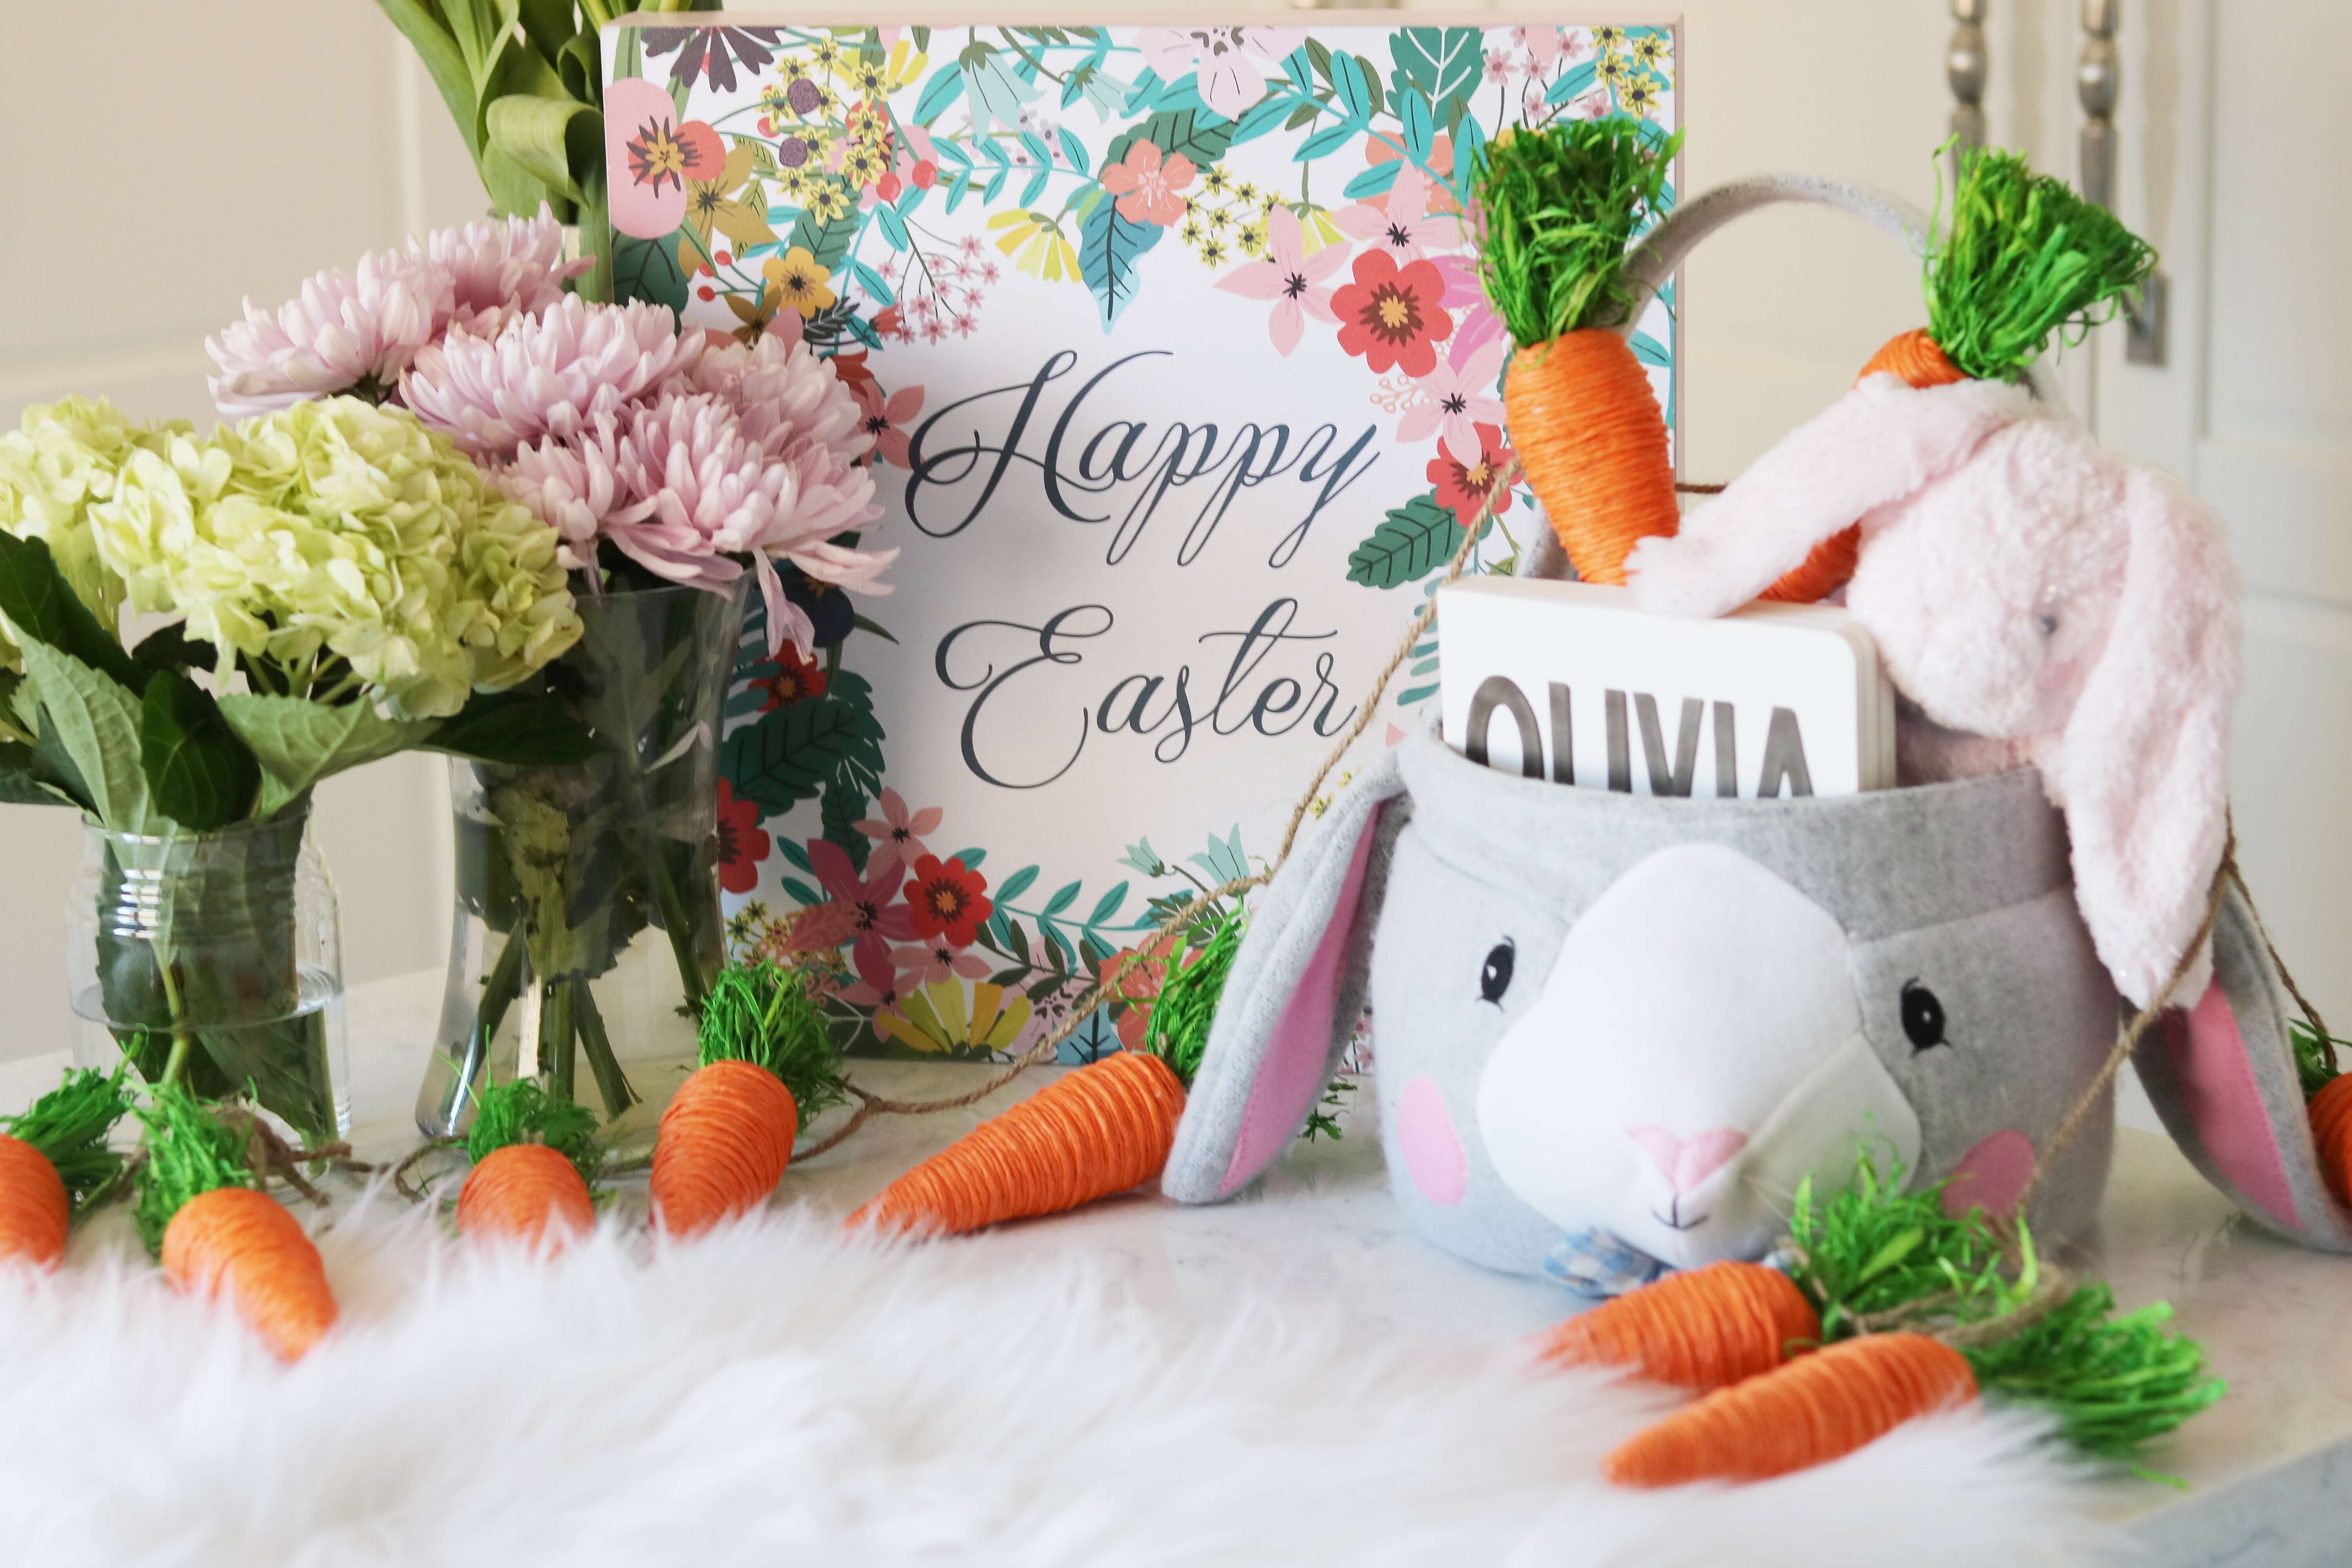 Easter Basket Ideas for Kids from buybuyBABY Whitby sparkleshinylove